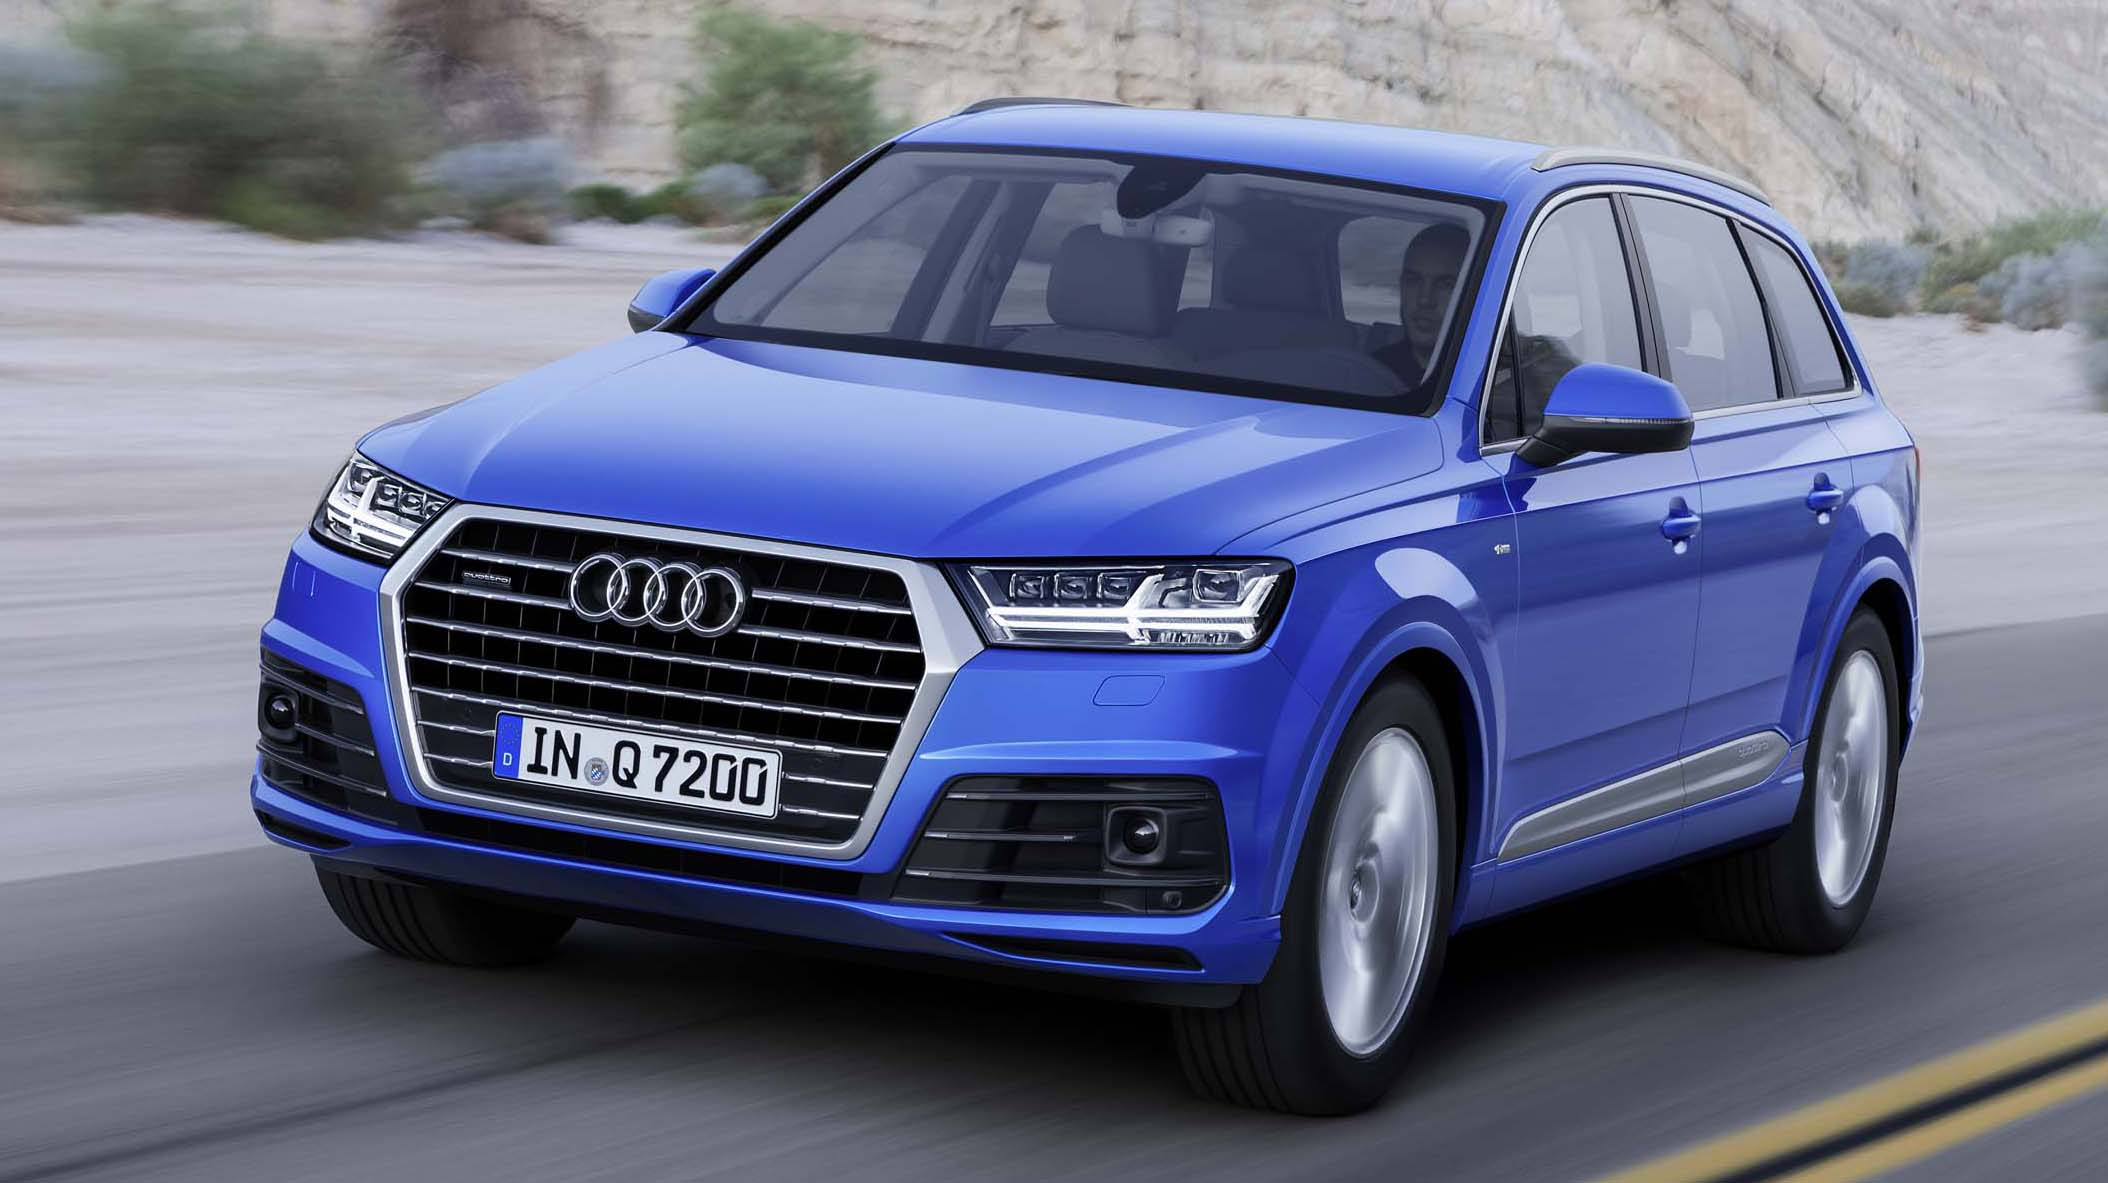 Audi Q7 Second Generation 7 Seater Suv Debuts Image 295883